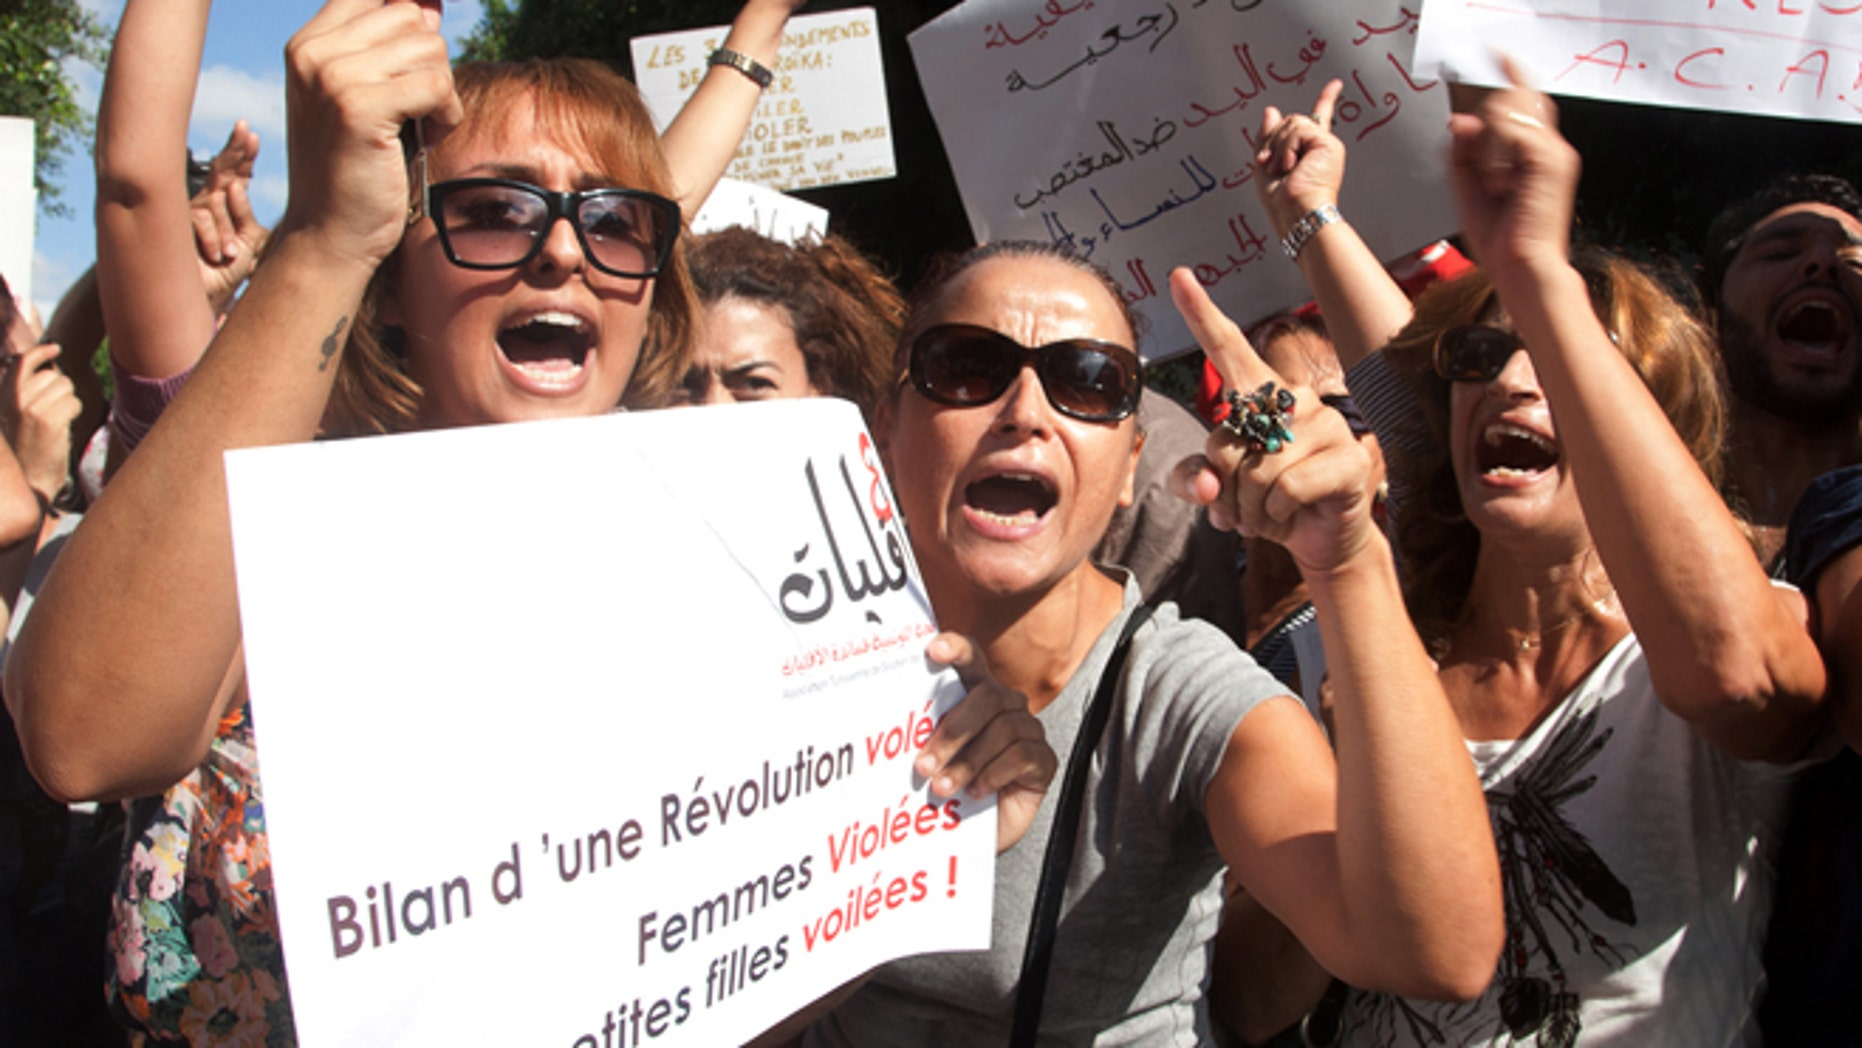 Oct. 2, 2012: Hundreds of Tunisian women protest  in support of a woman who says she was raped by police and is facing accusations of violating modesty laws in Tunis.